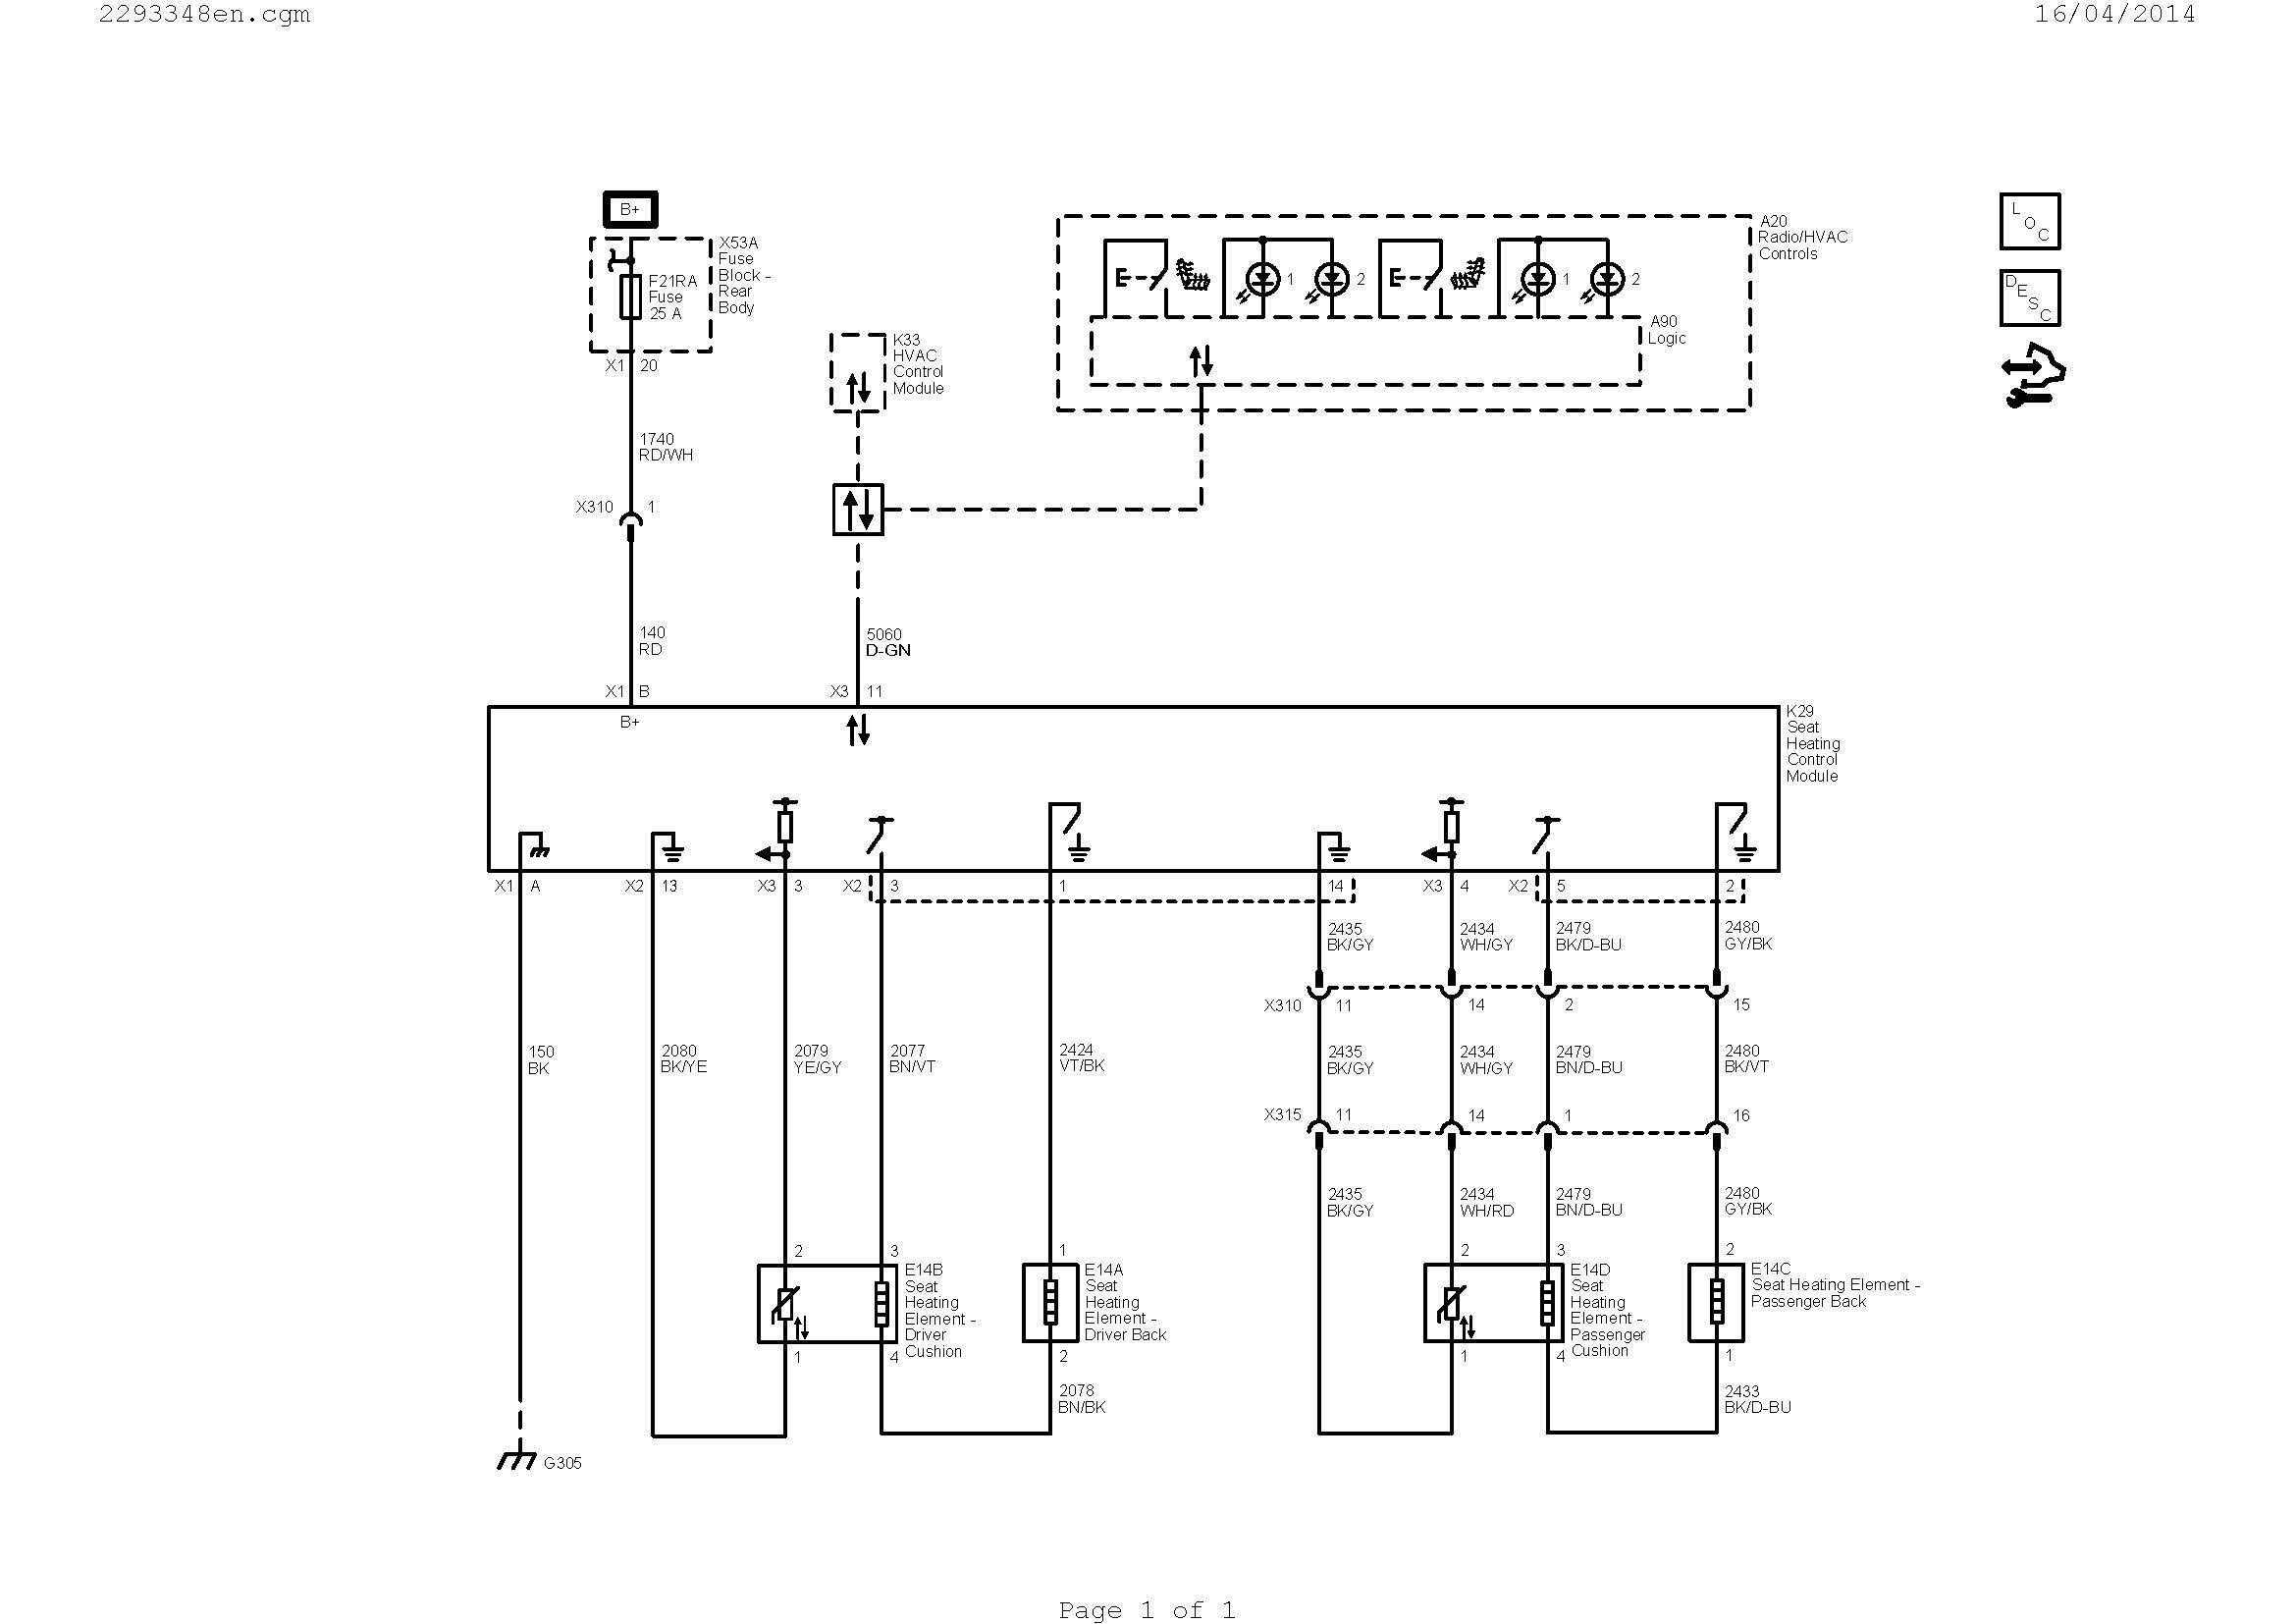 hvac thermostat wiring diagram Collection-Nest Wireless thermostat Wiring Diagram Refrence Wiring Diagram Ac Valid Hvac Diagram Best Hvac Diagram 0d 10-j